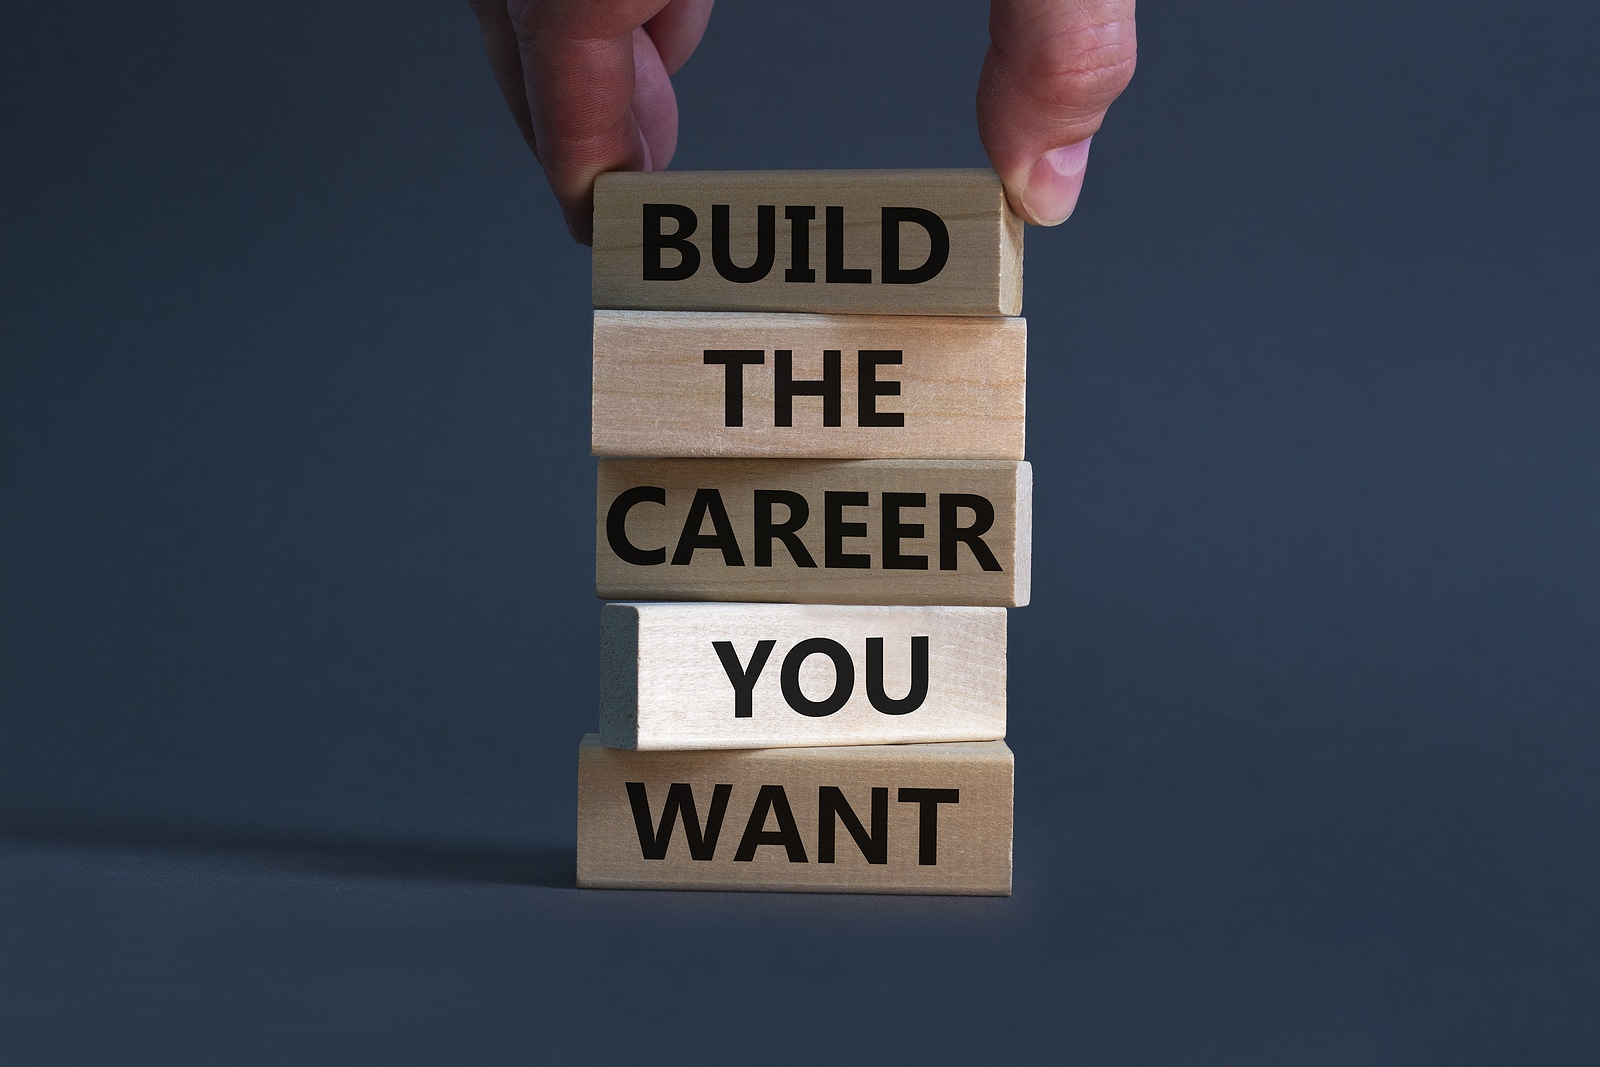 Business, build the career you want concept